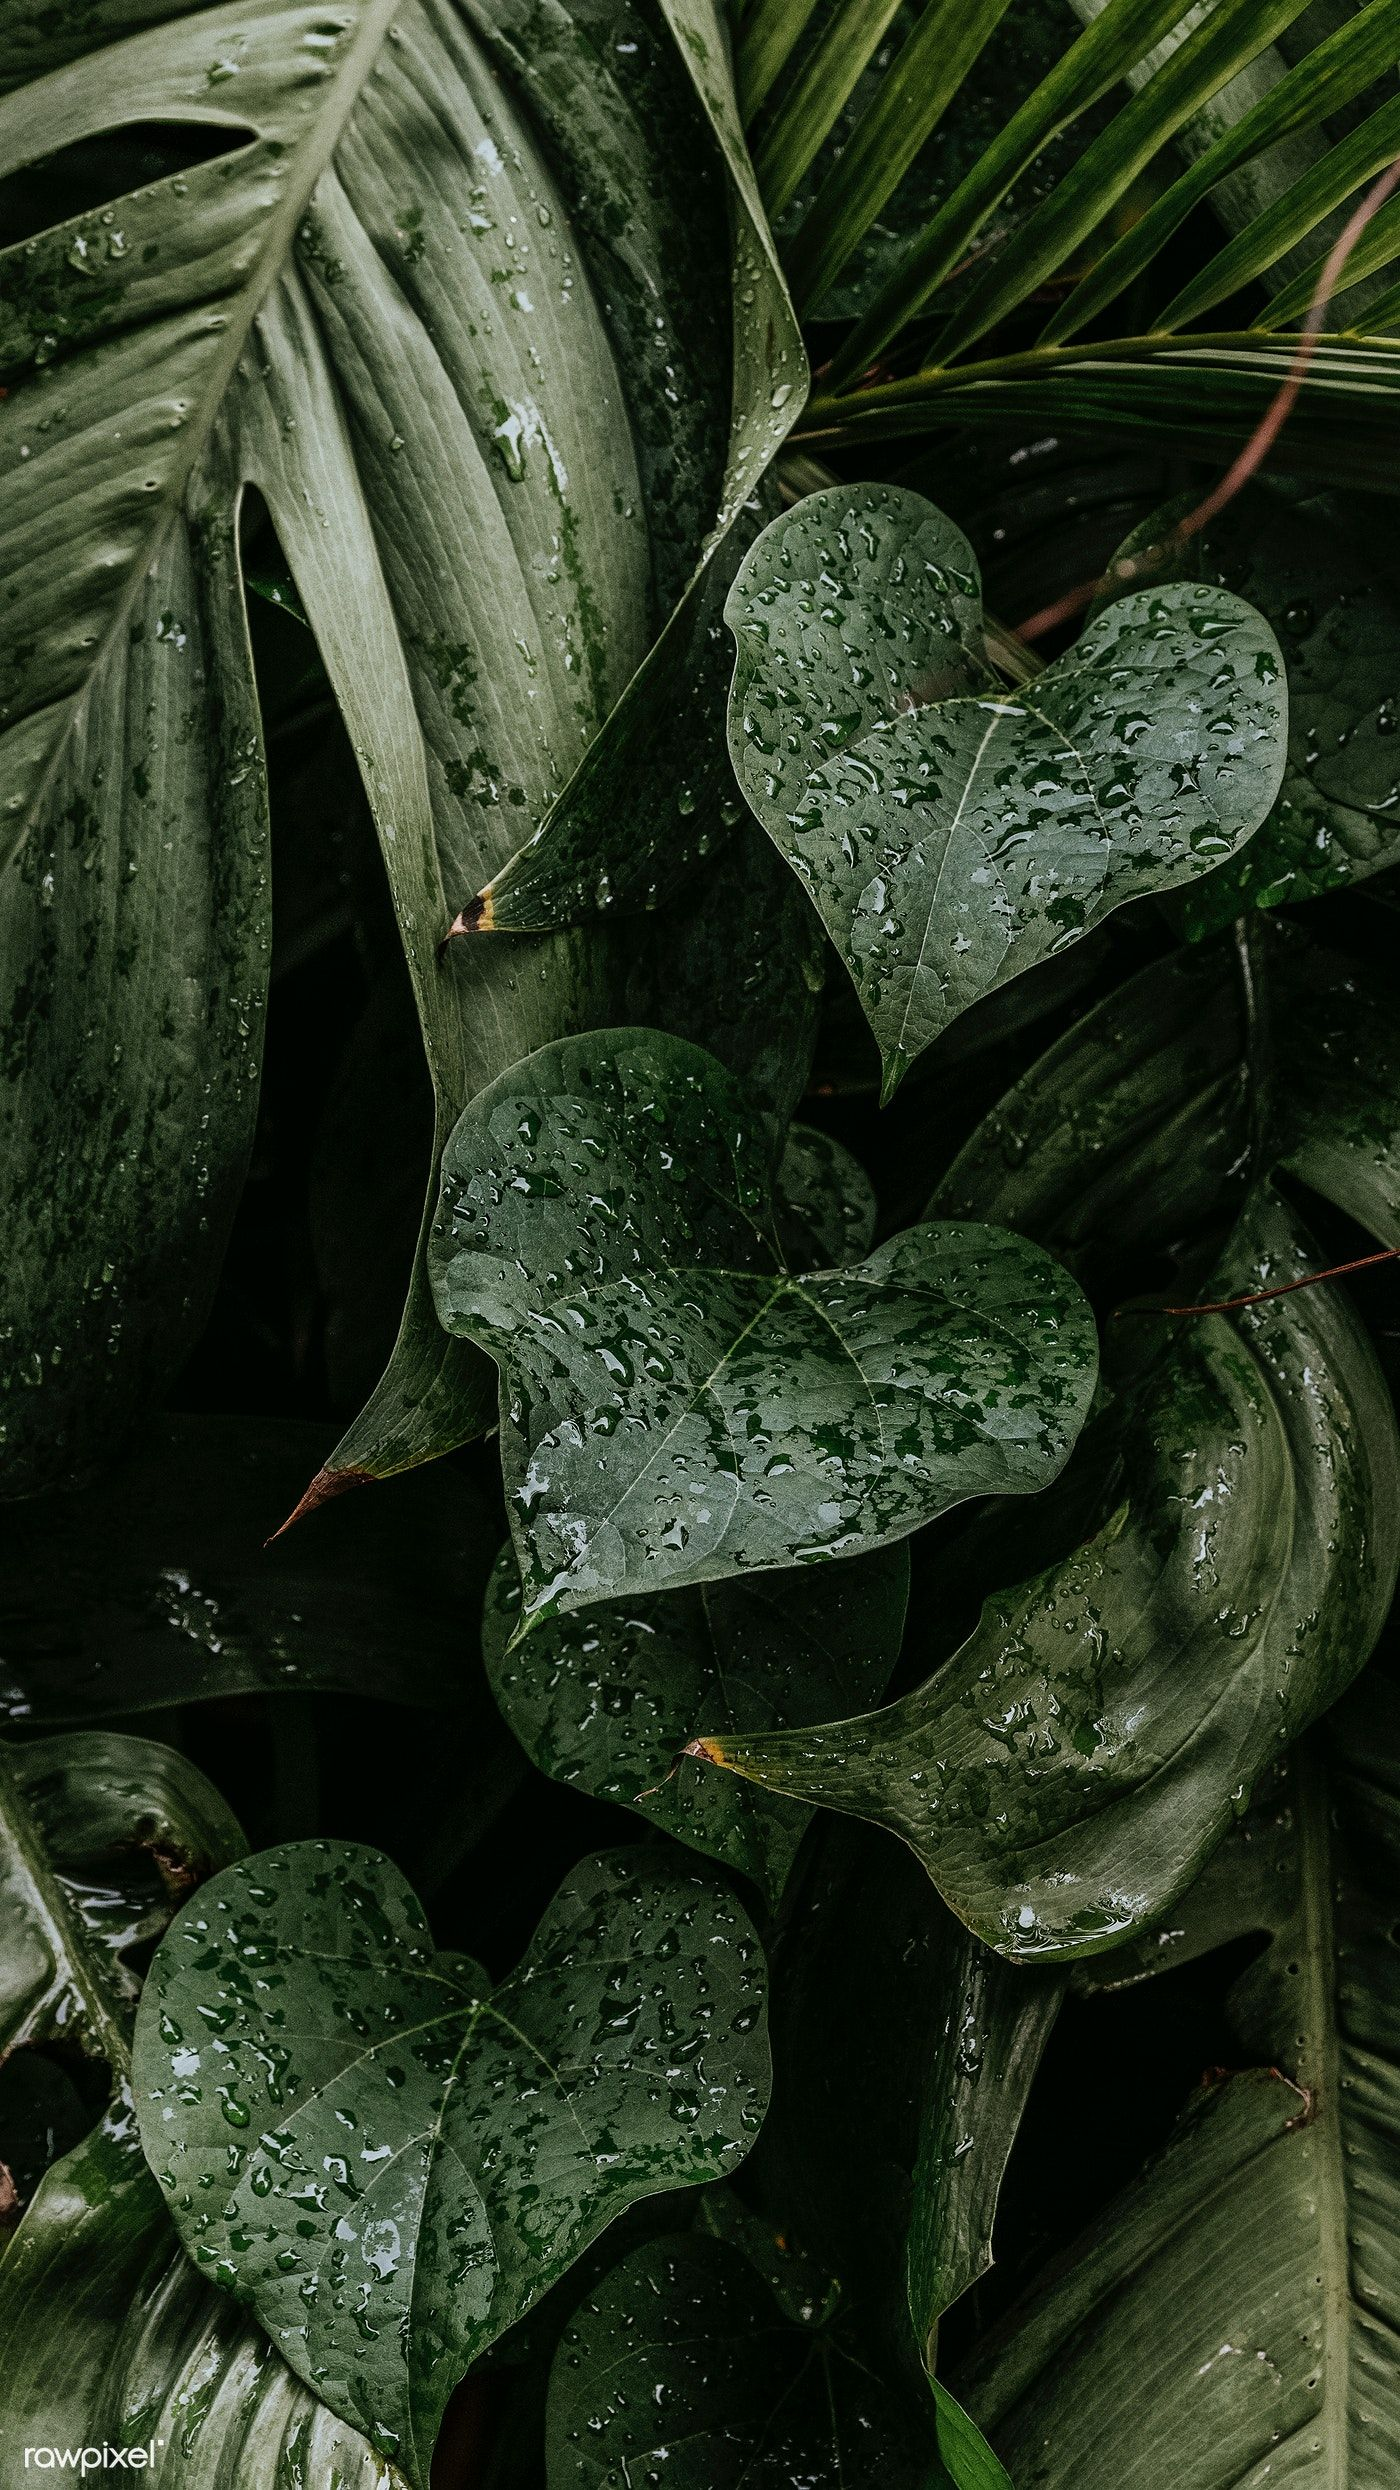 Download free image of Wet monstera plant leaves m